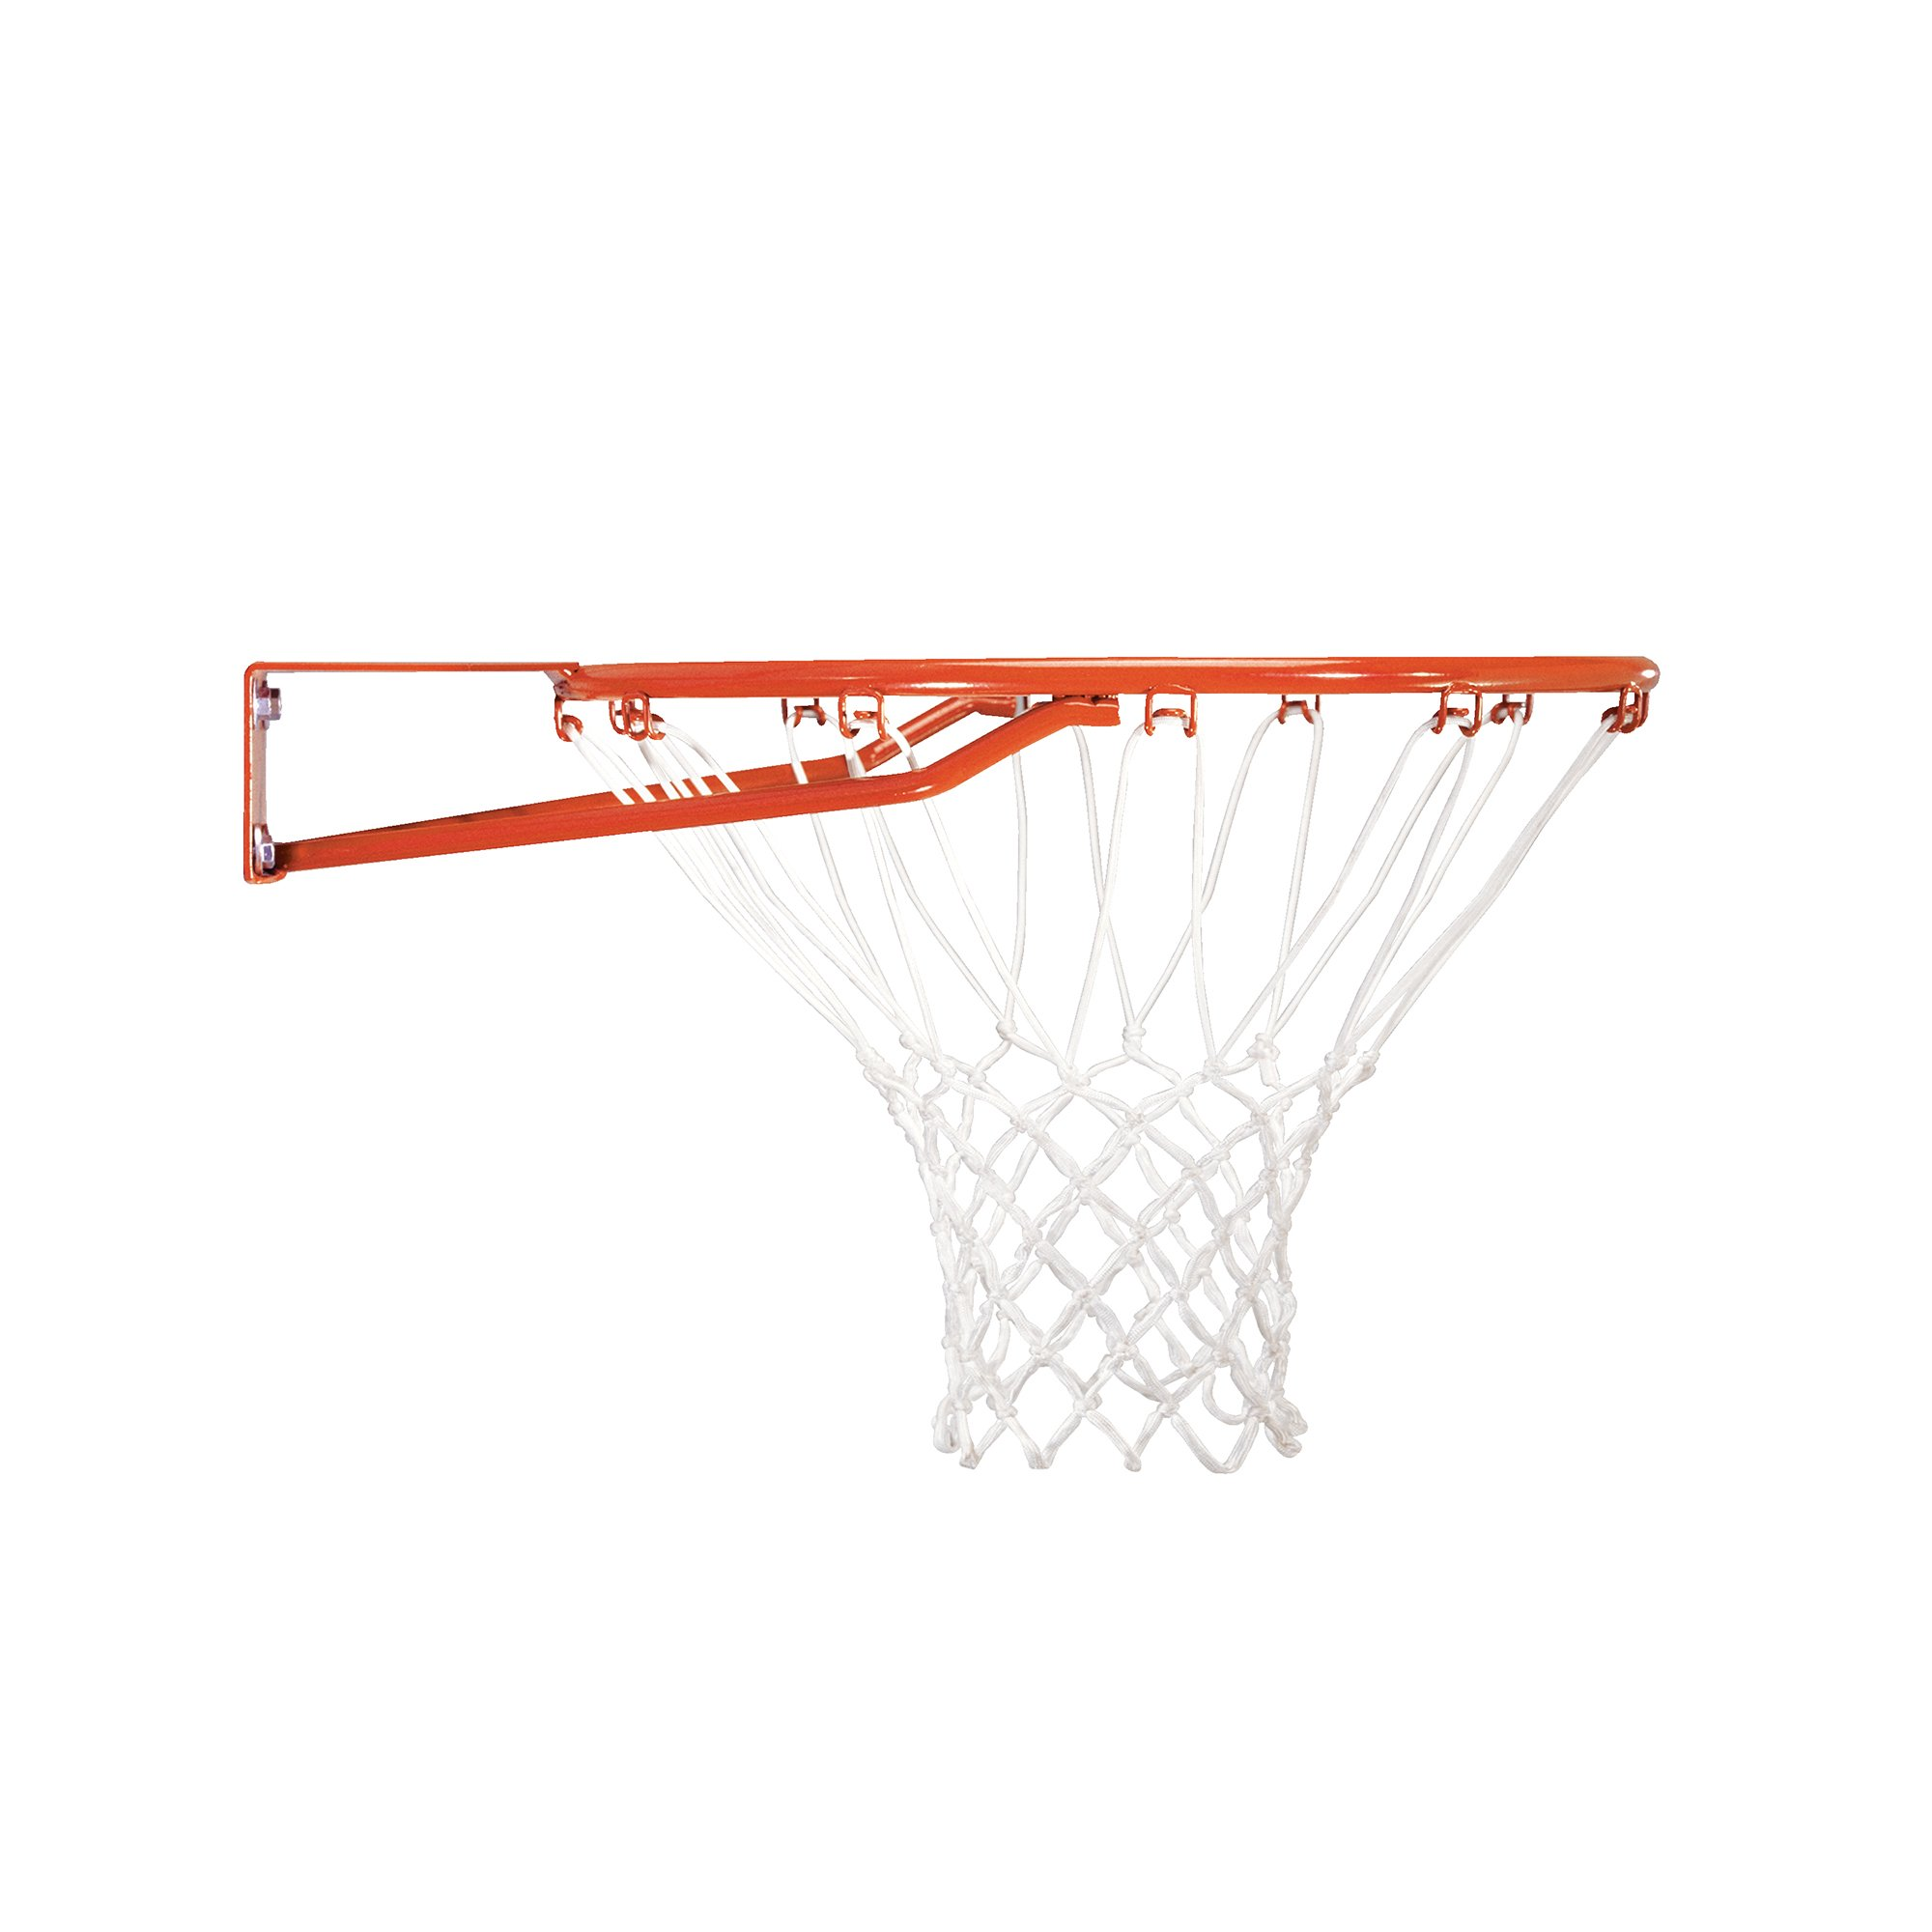 Lifetime 1269 Pro Court Height Adjustable Portable Basketball System, 44 Inch Backboard by Lifetime (Image #4)